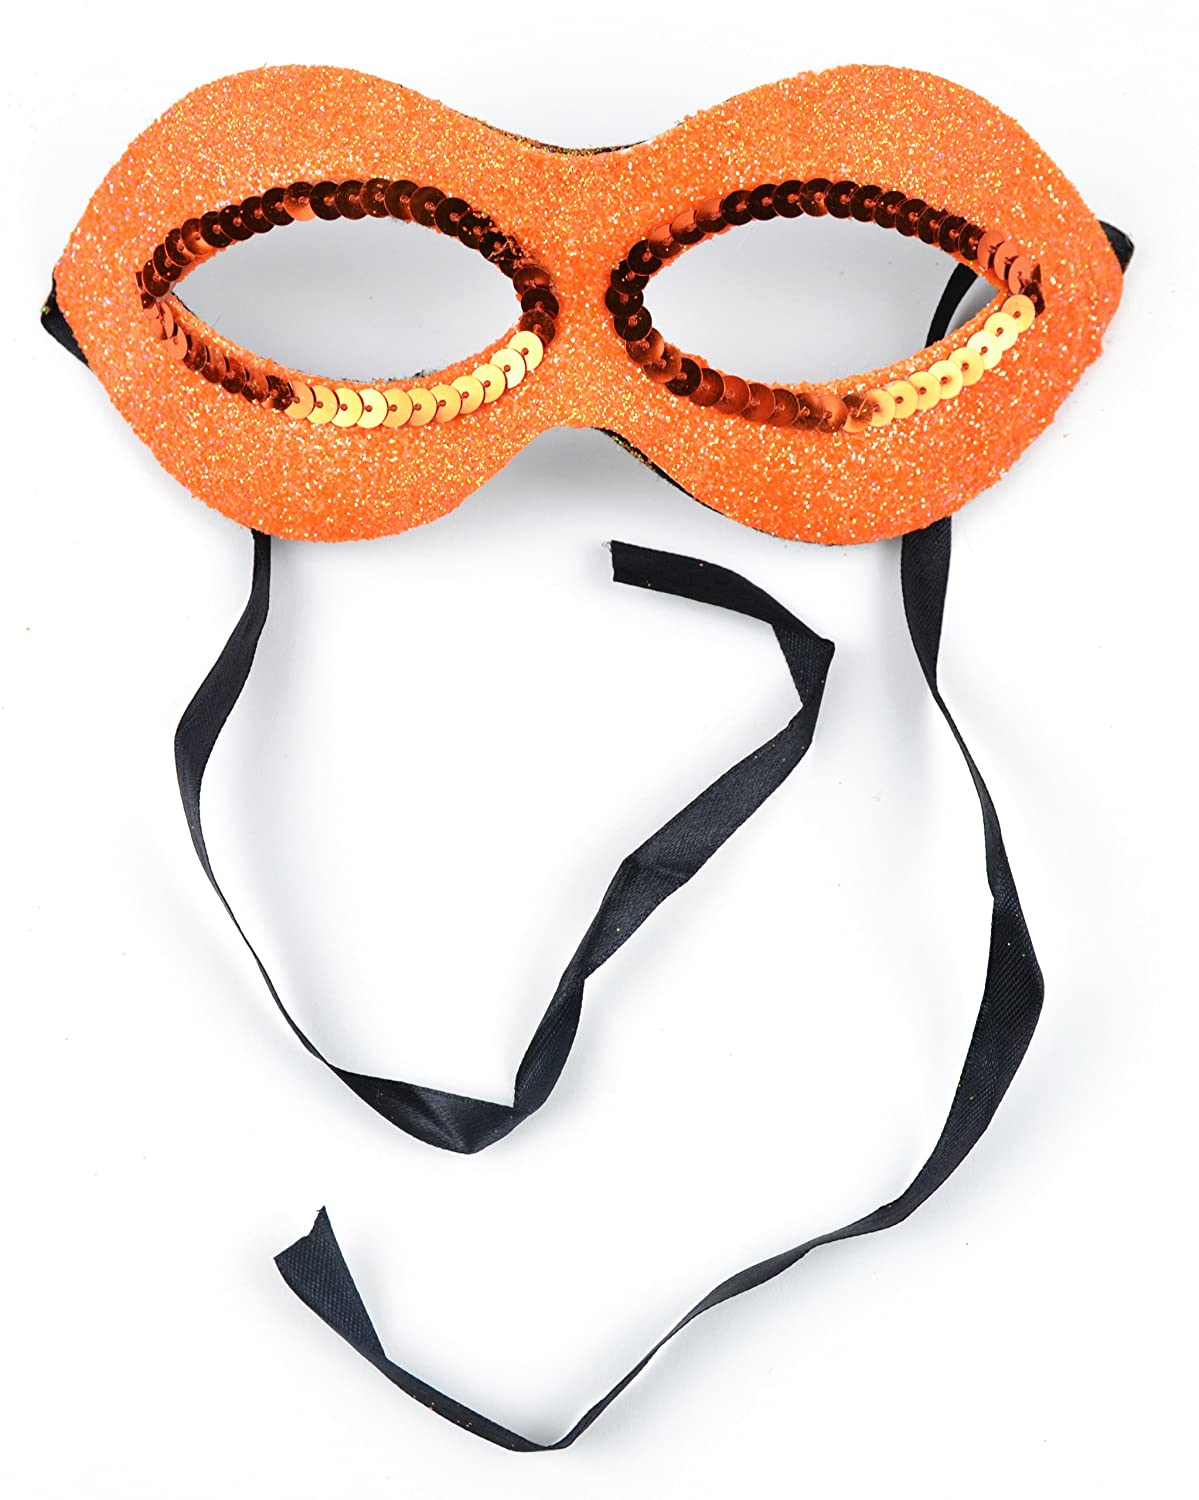 MaskIt Fancy Deco Half Mask Turquoise with Sequins and Glitter Black Cloth Tie Midwest Design Imports Inc 71147 7-Inch